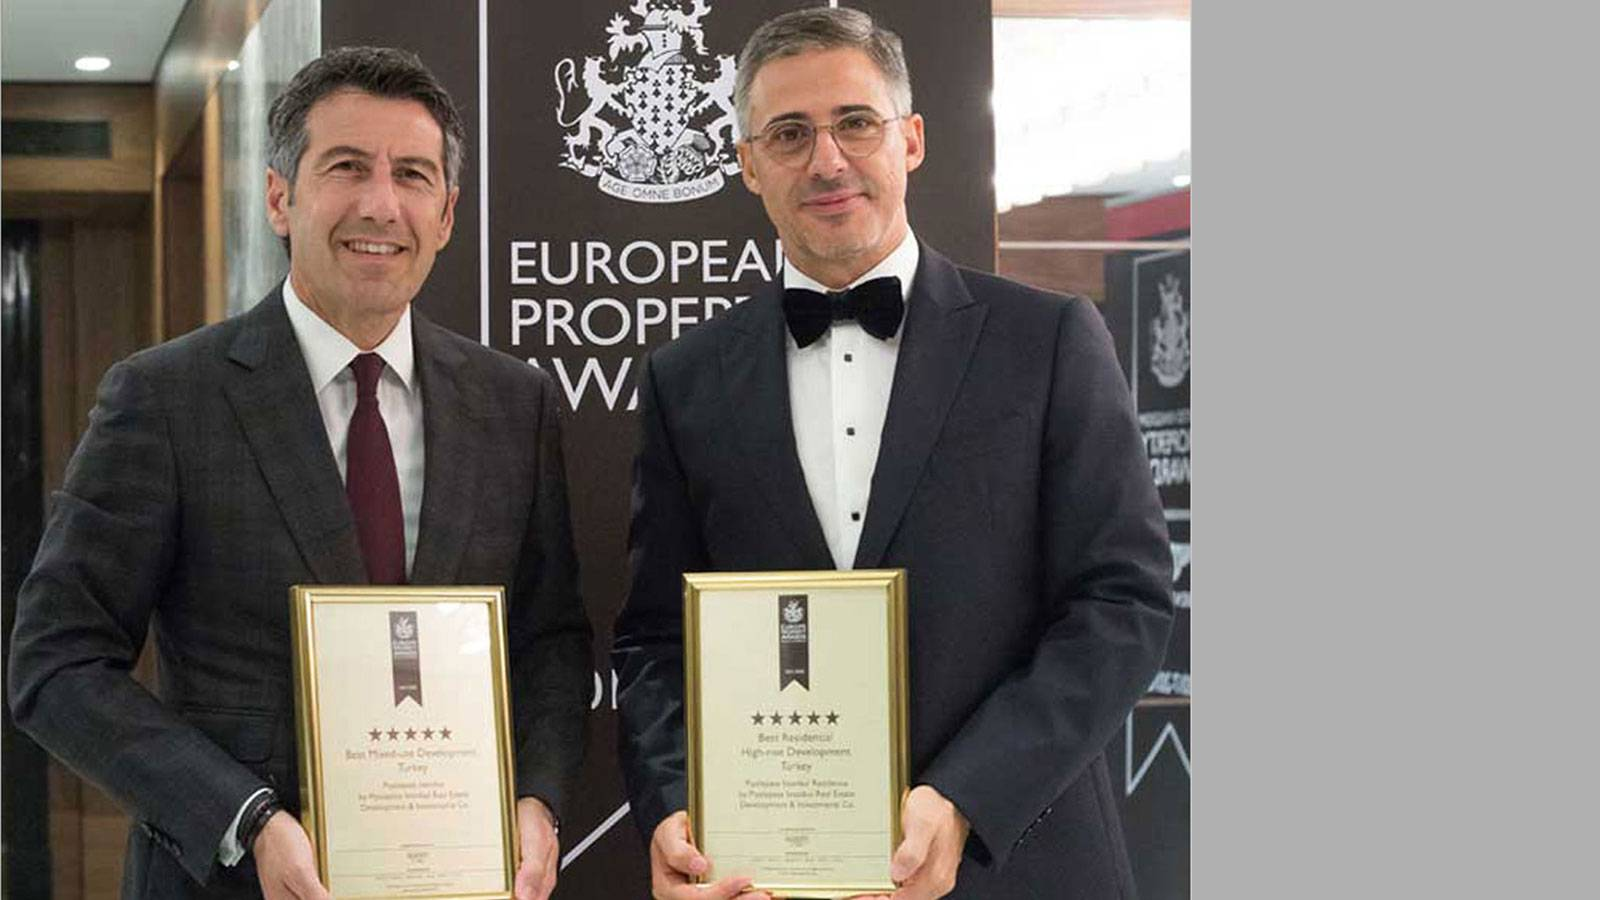 27.10.2017 2017-18 Cycle's Results of European Property Awards had been announced in London.